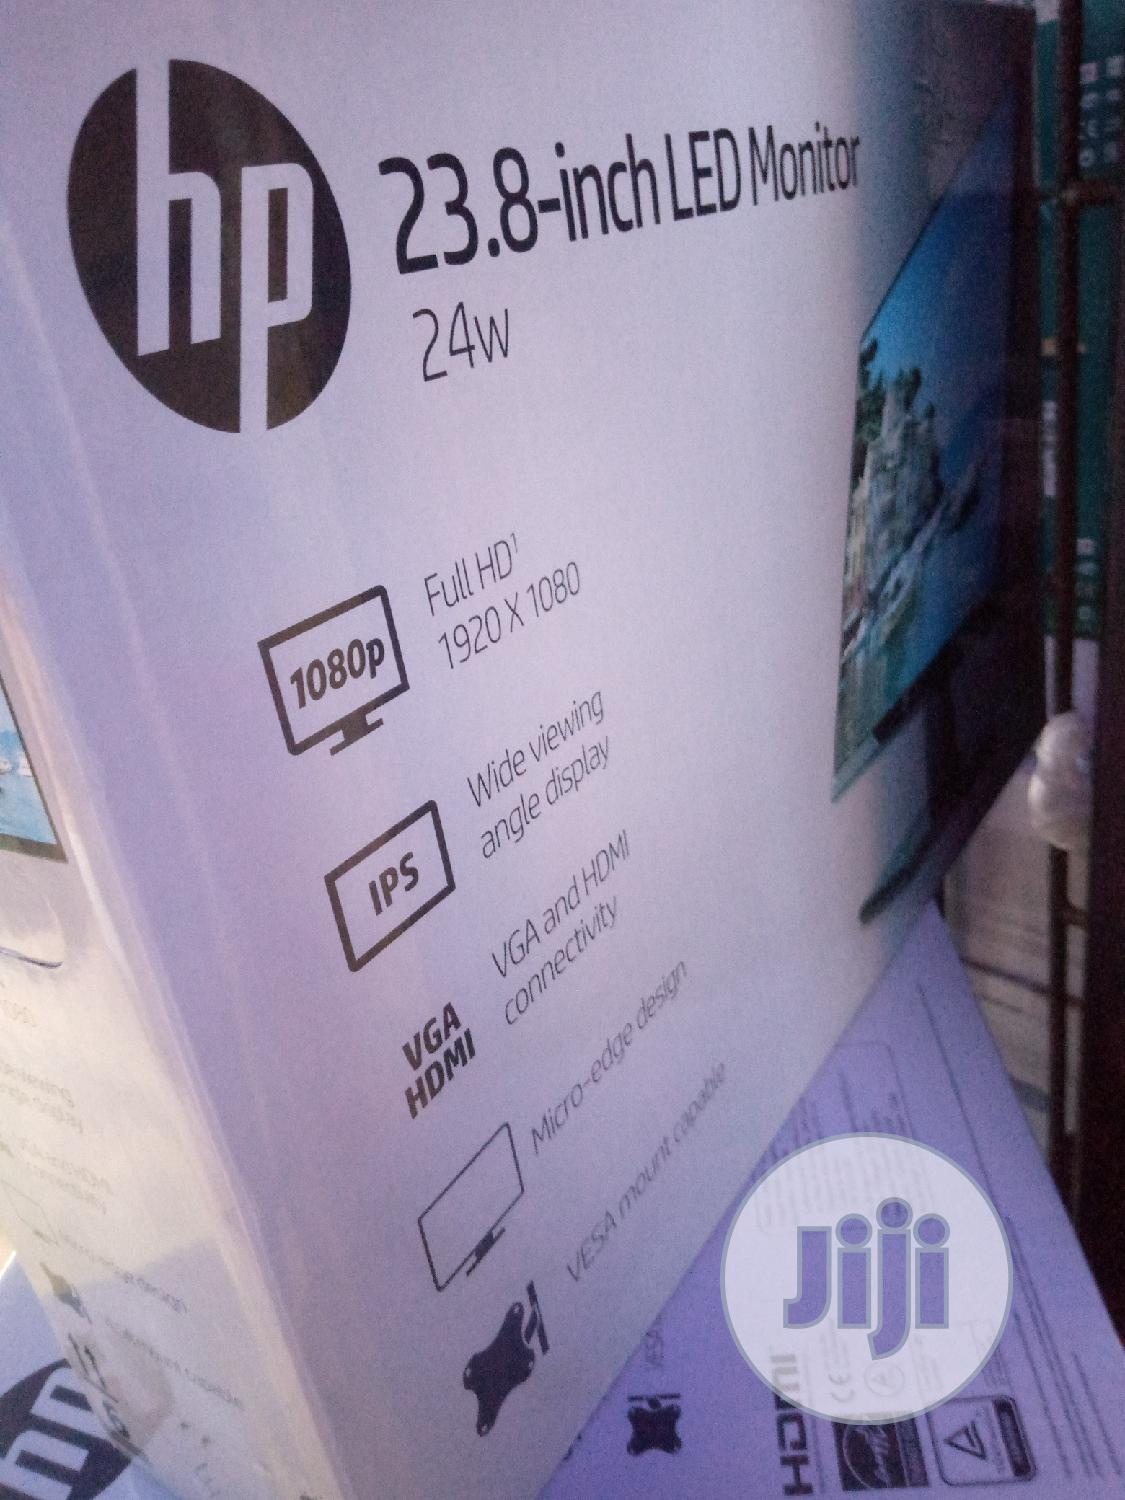 Hp 23.8-Inch Led Monitor 24w | Computer Monitors for sale in Ikeja, Lagos State, Nigeria